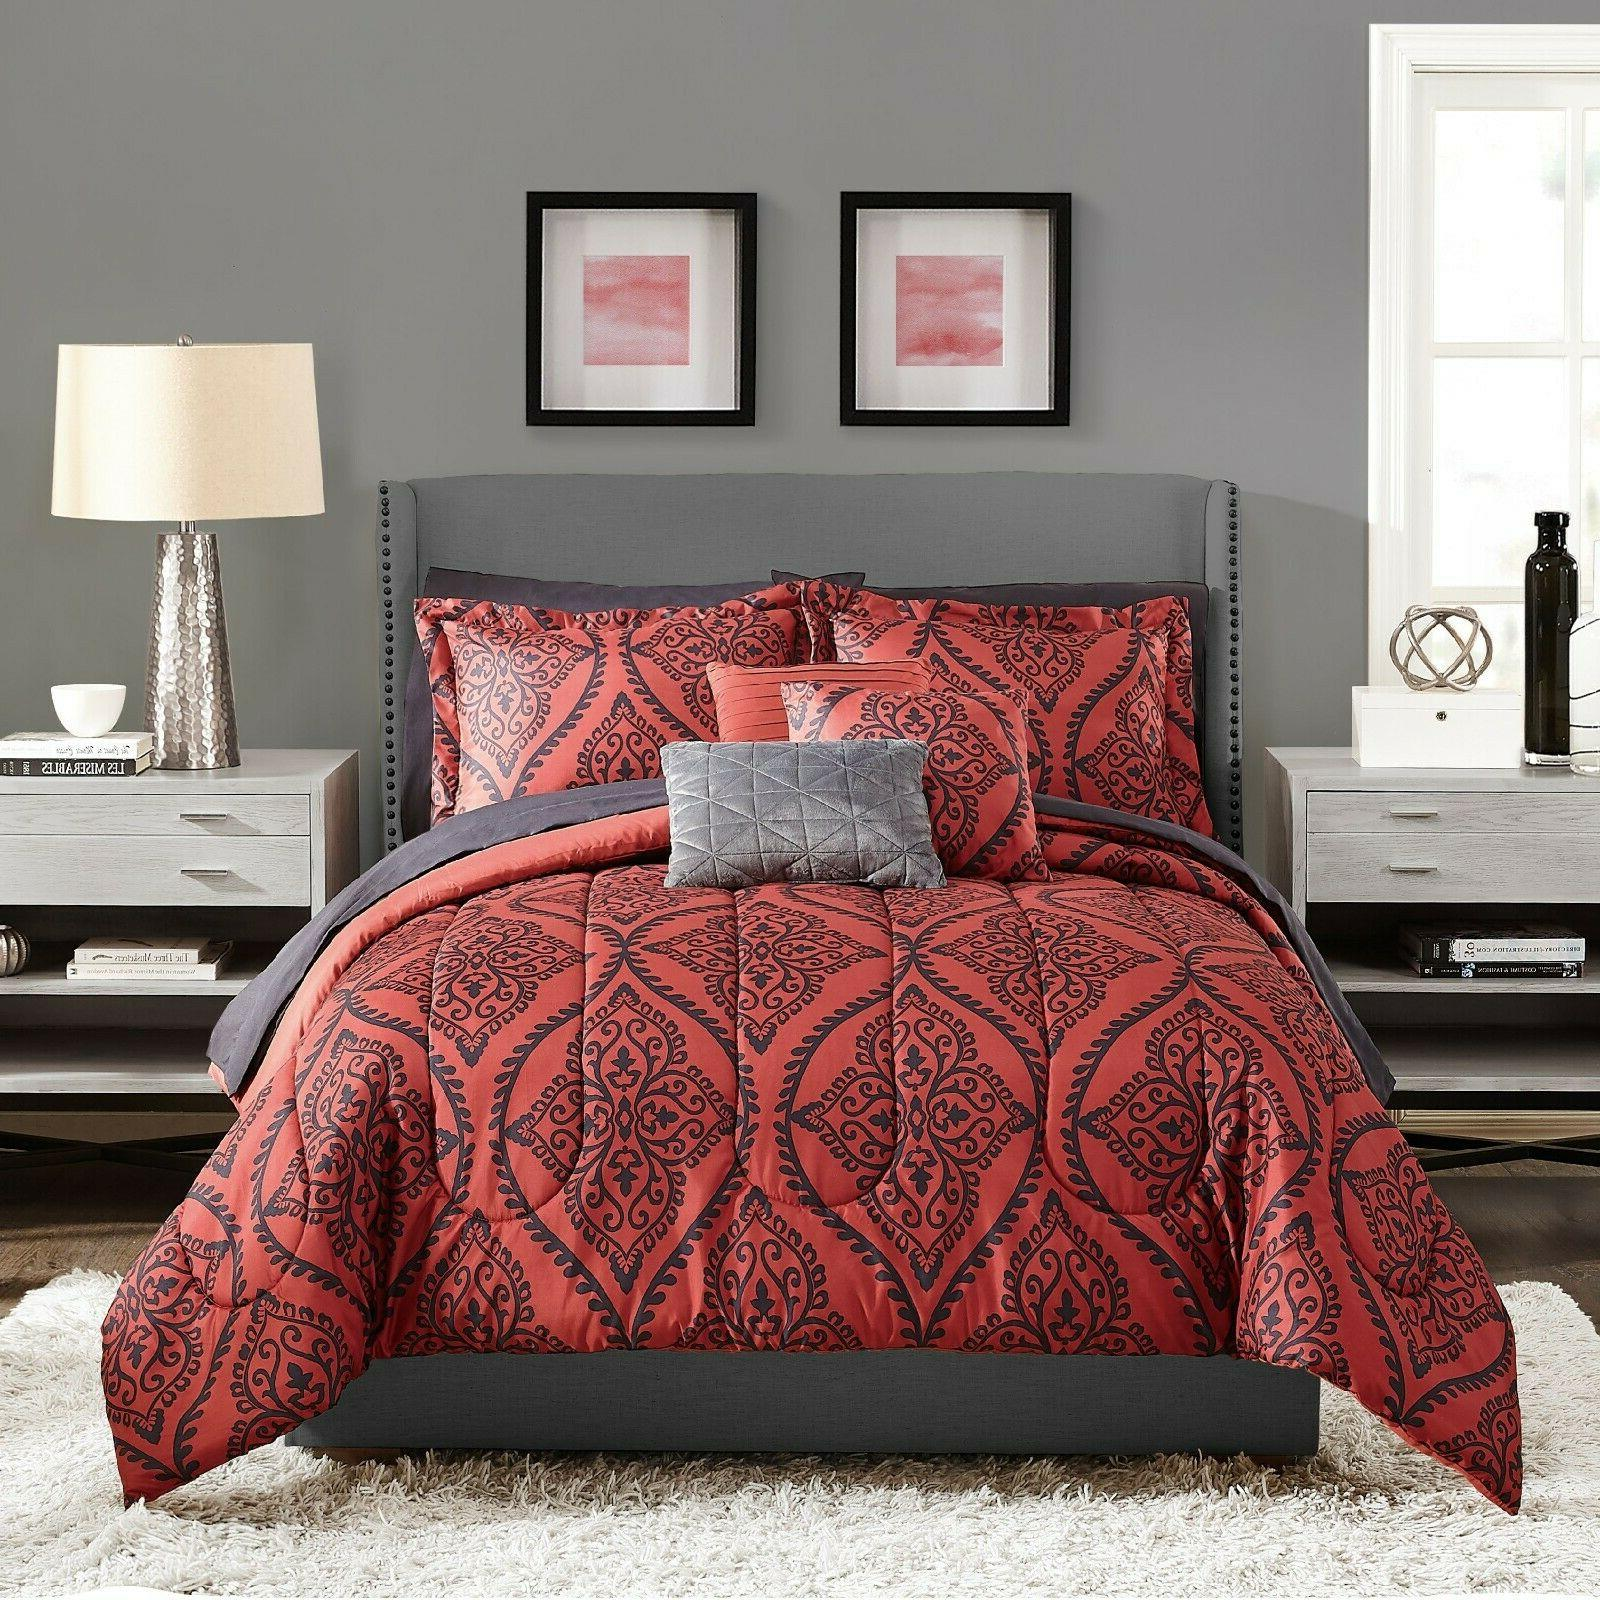 Red Black Size Comforter Sheets Bed Pillows Bedroom NEW